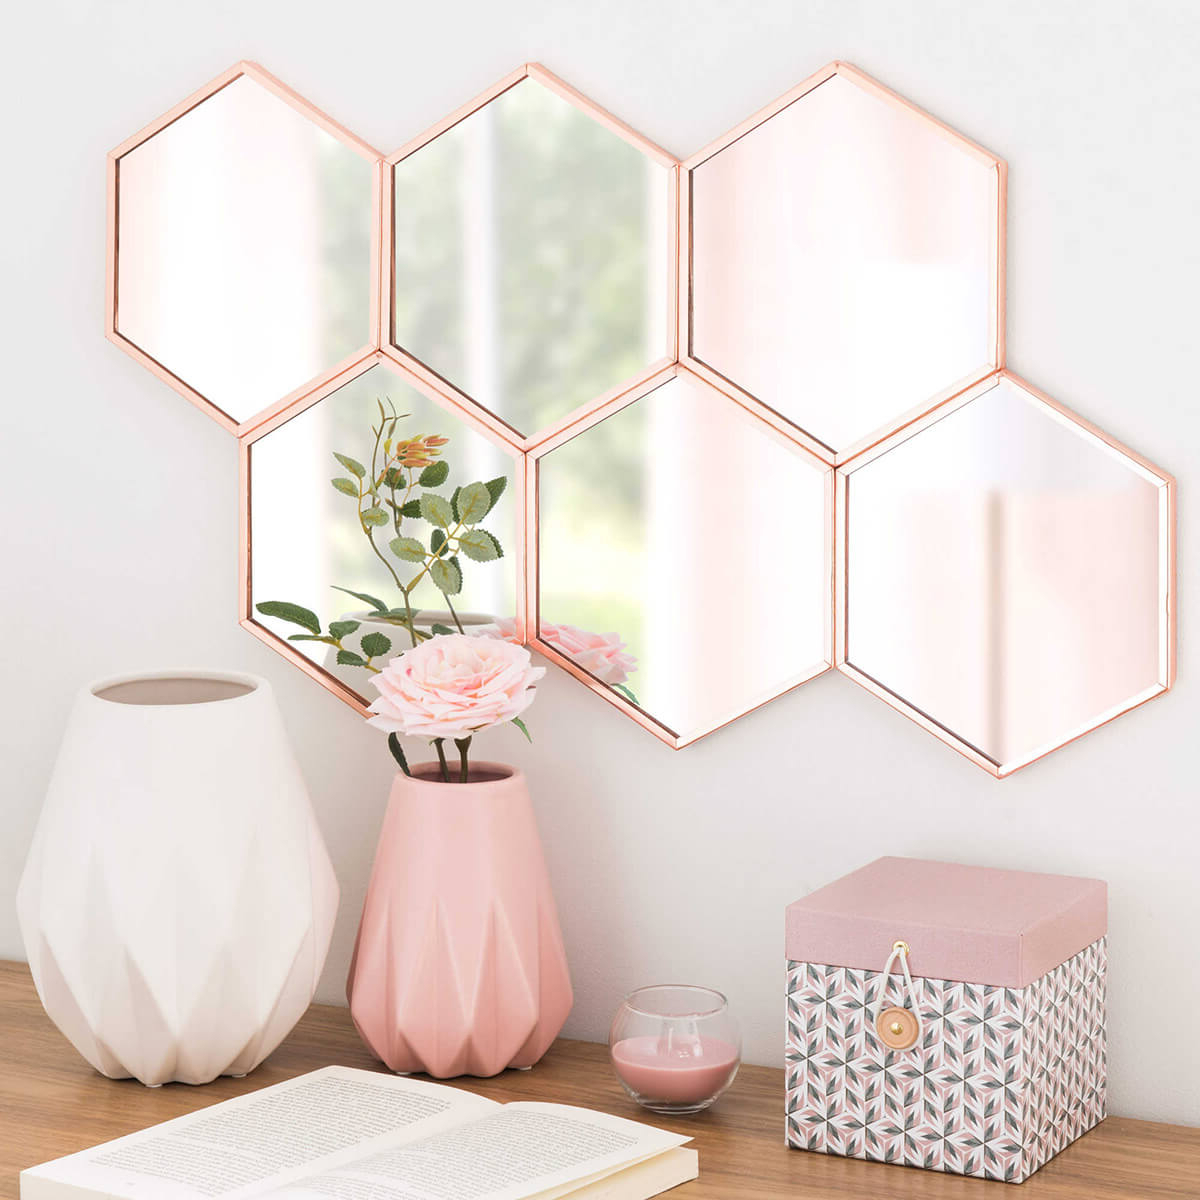 33 Best Mirror Decoration Ideas And Designs For 2019 For Most Popular Hexagon Wall Mirrors (View 12 of 20)